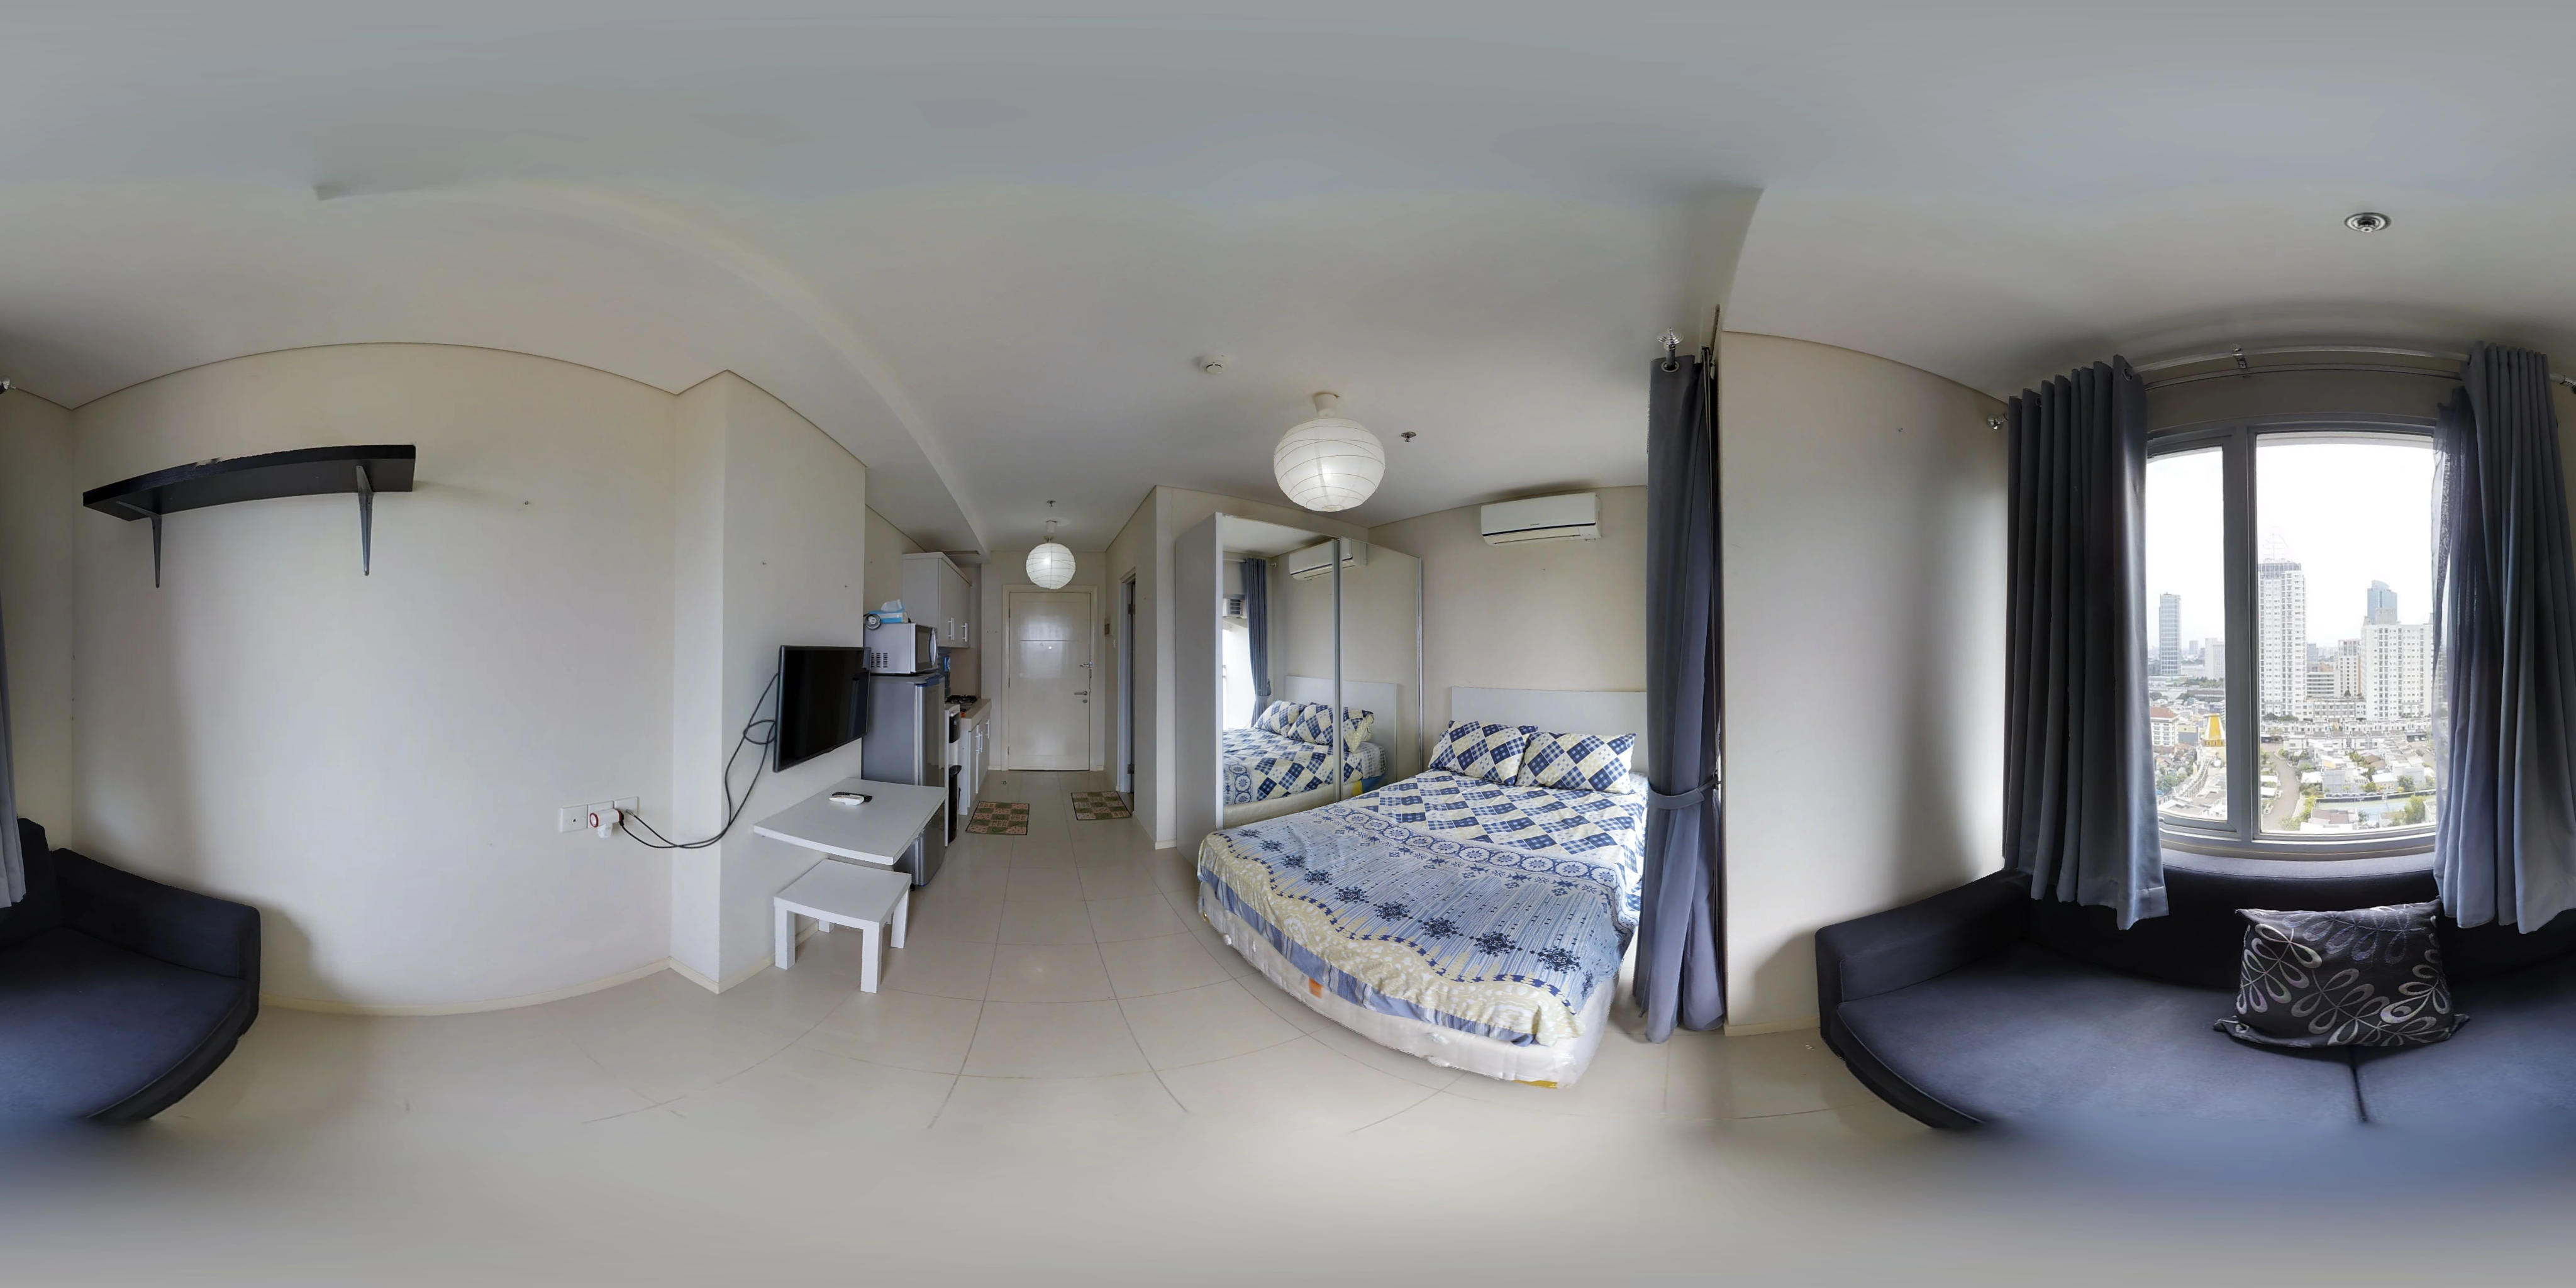 for rent Cosmo Terrace - Nice and clean studio room fit for city living